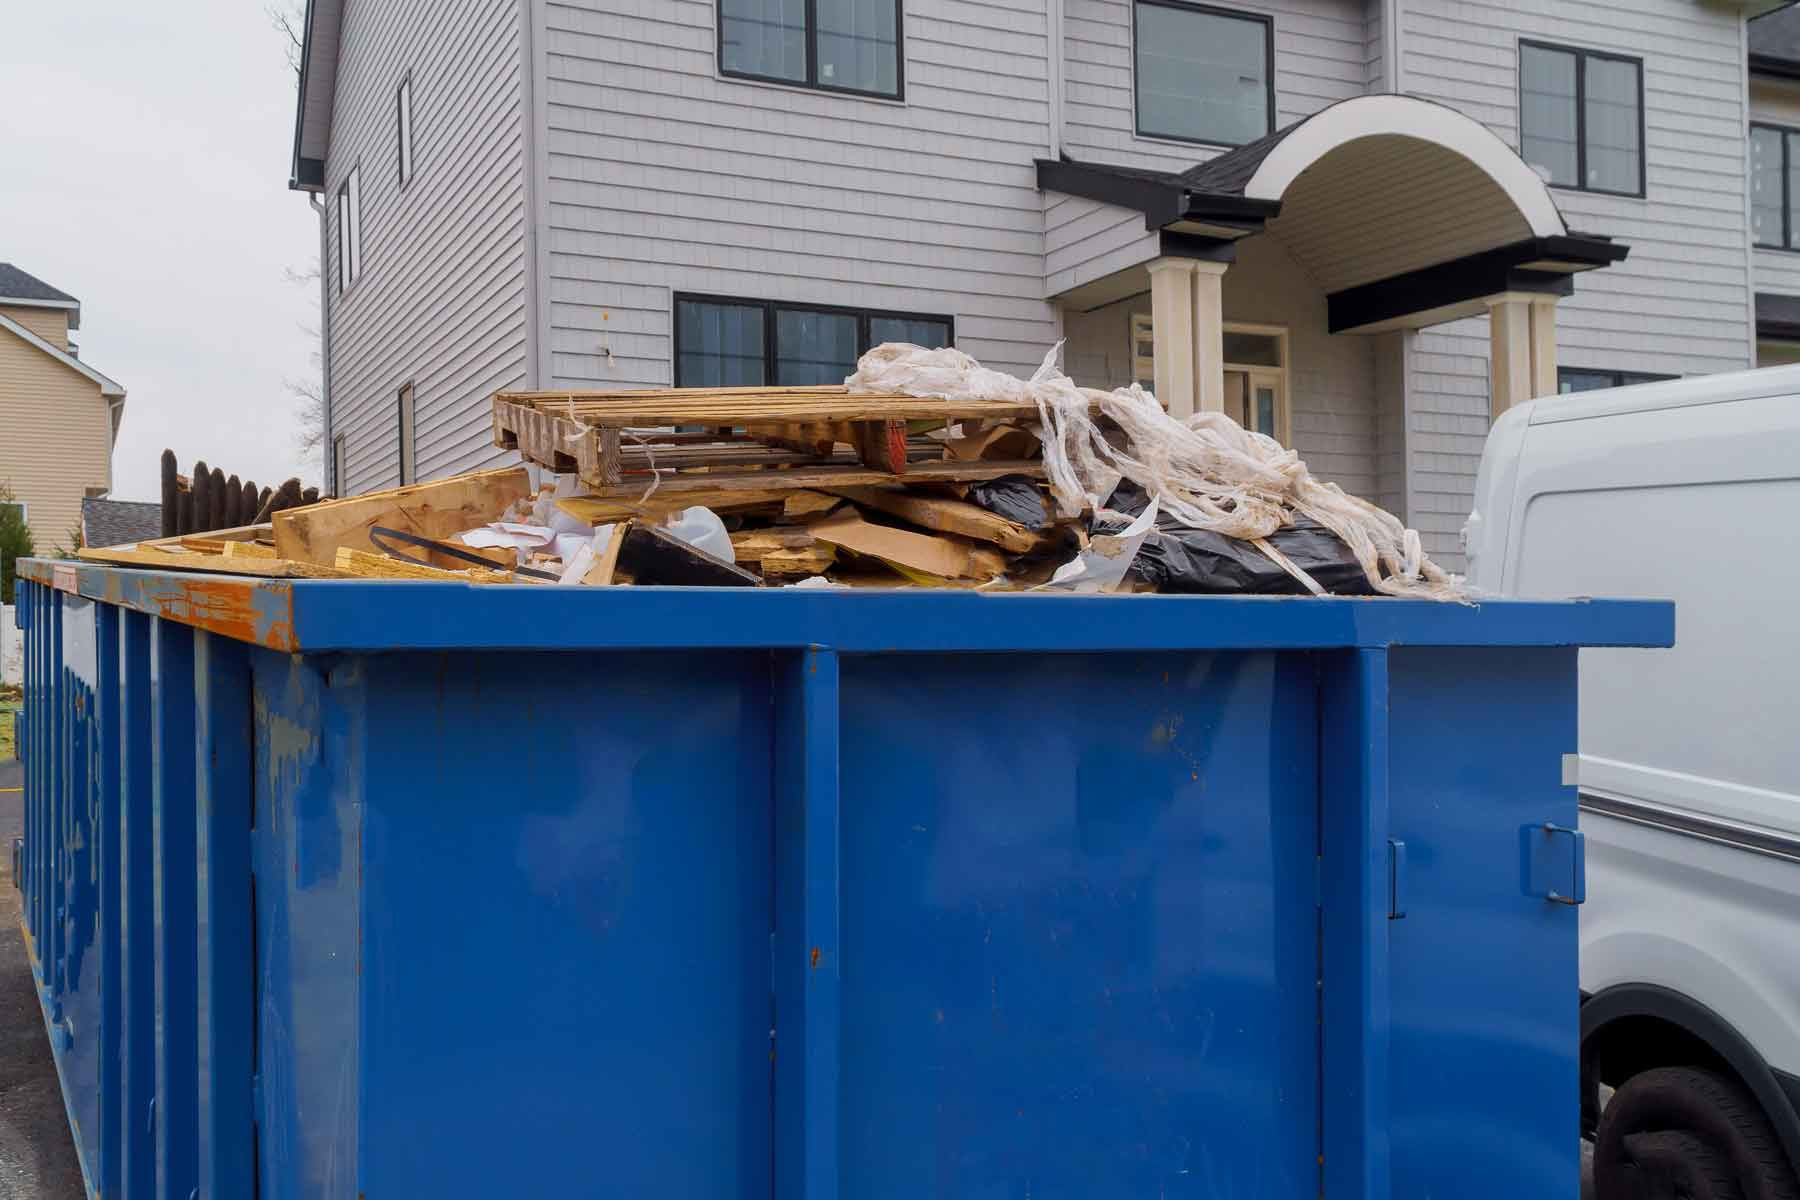 a blue dumpster filled with trash outside a home